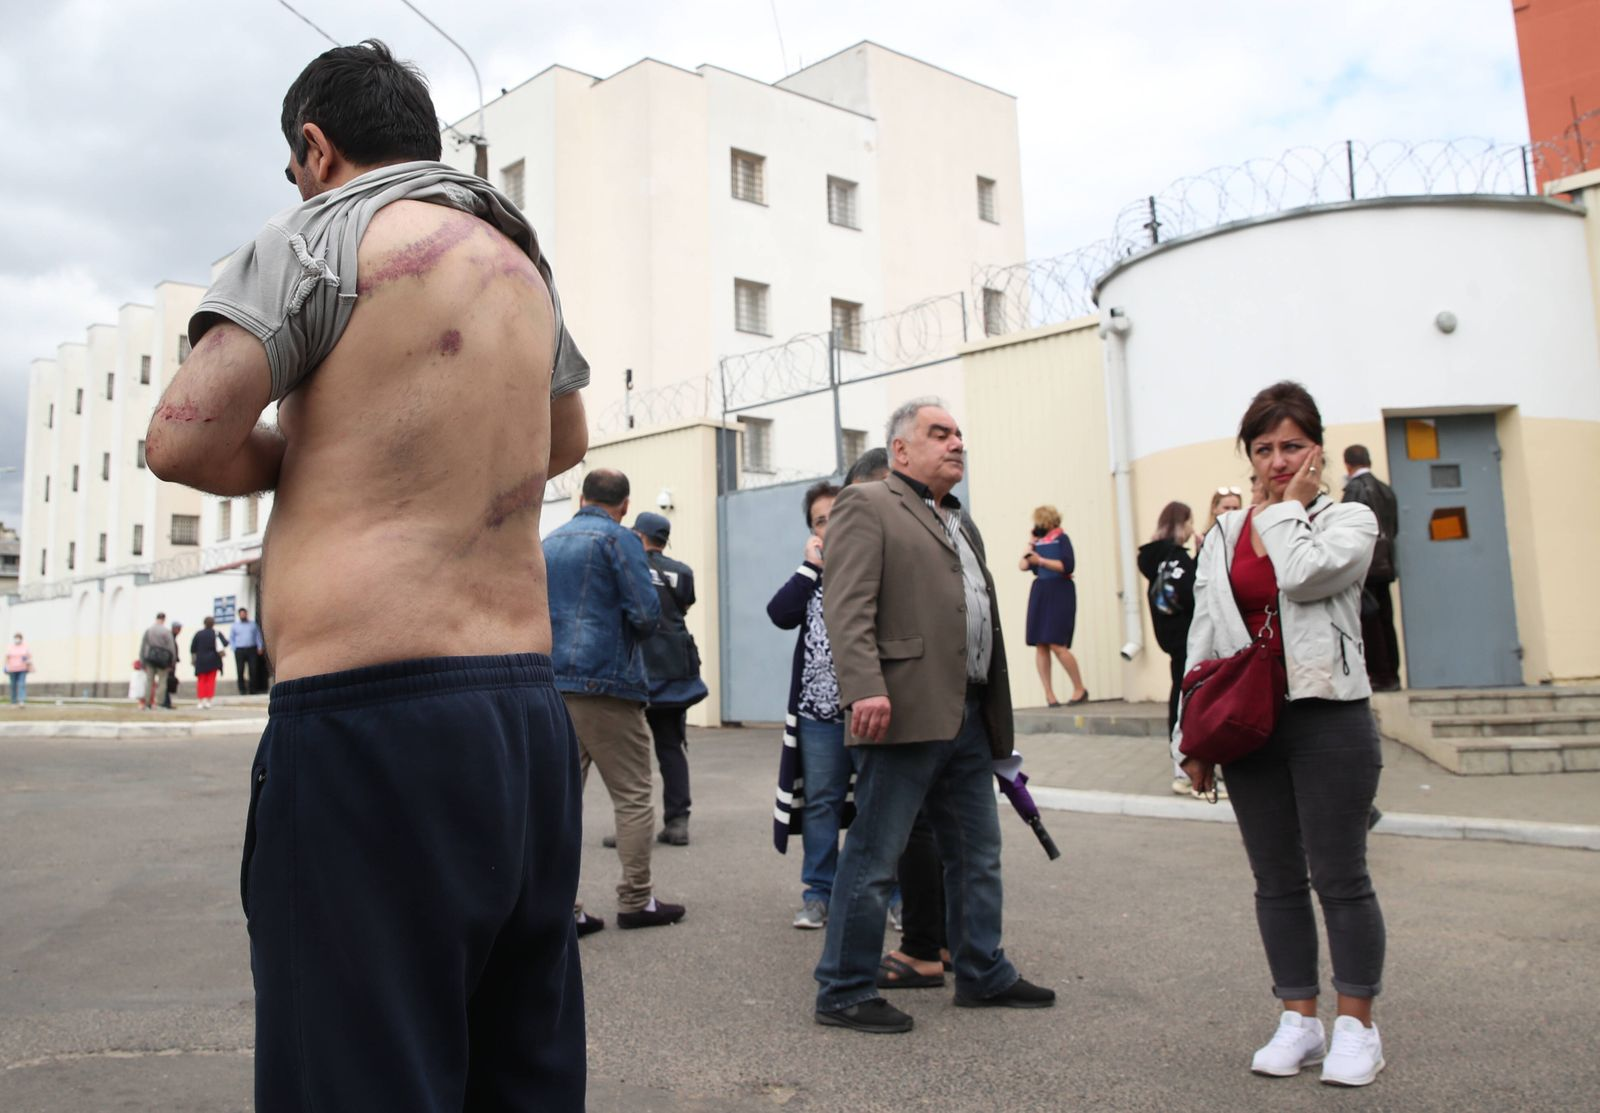 MINSK, BELARUS - AUGUST 13, 2020: Vardan Grigryan, detained during a mass protest, lifts his shirt to show injuries afte